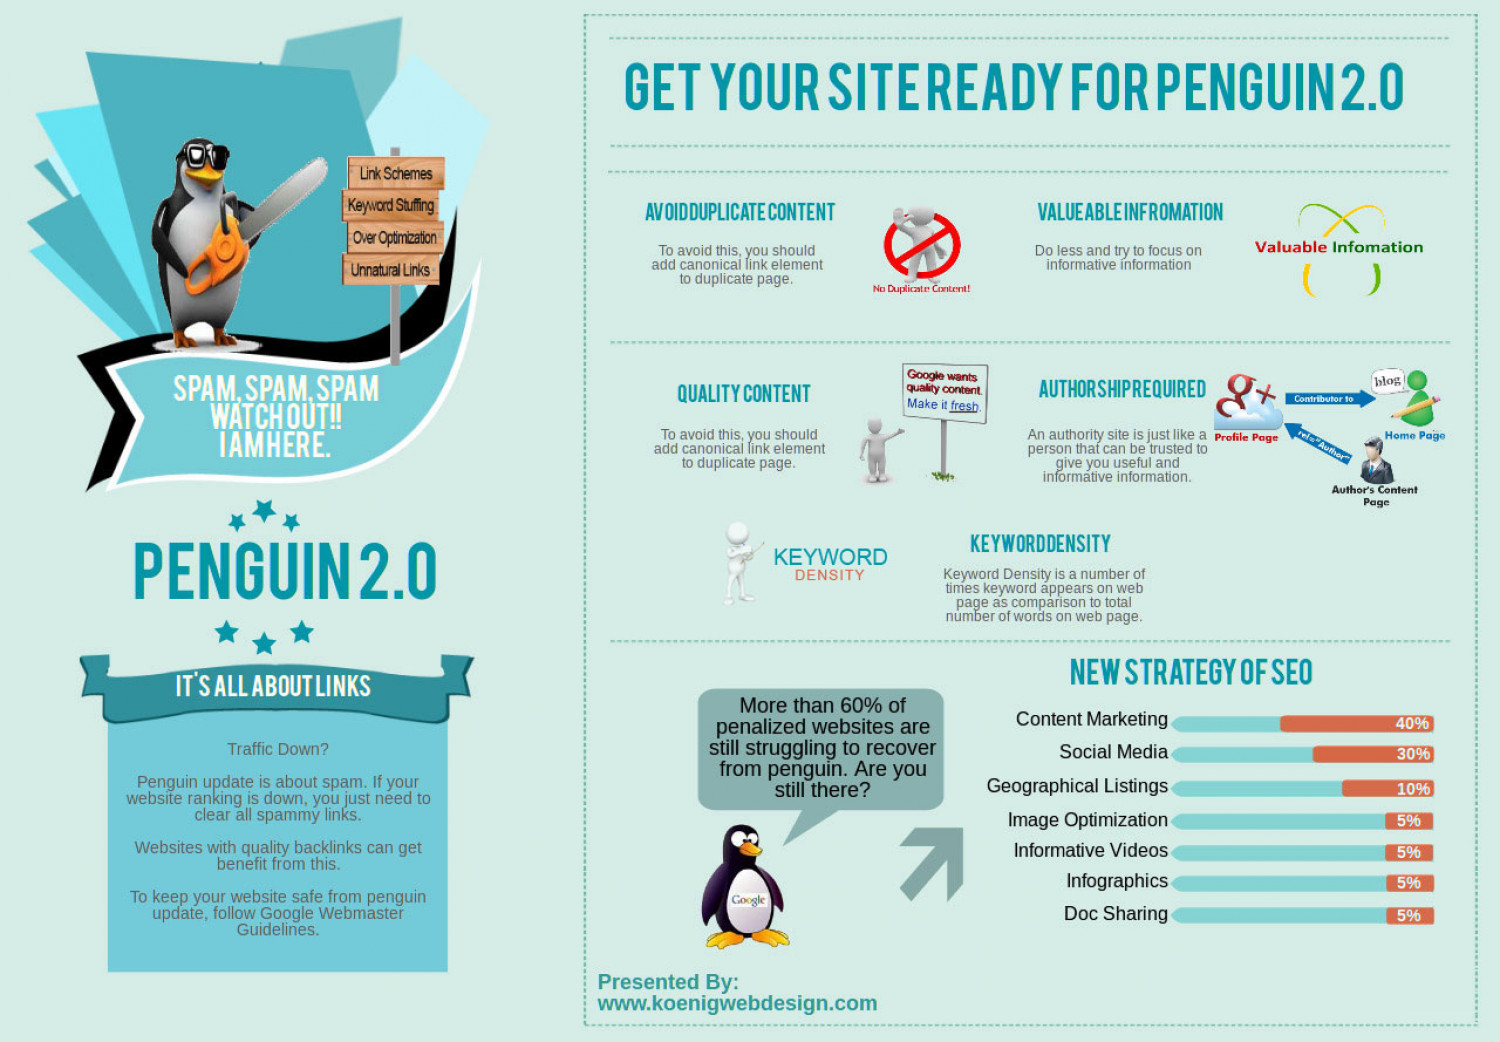 Google Penguin 2.0 Update - How can we get safe from this? Infographic